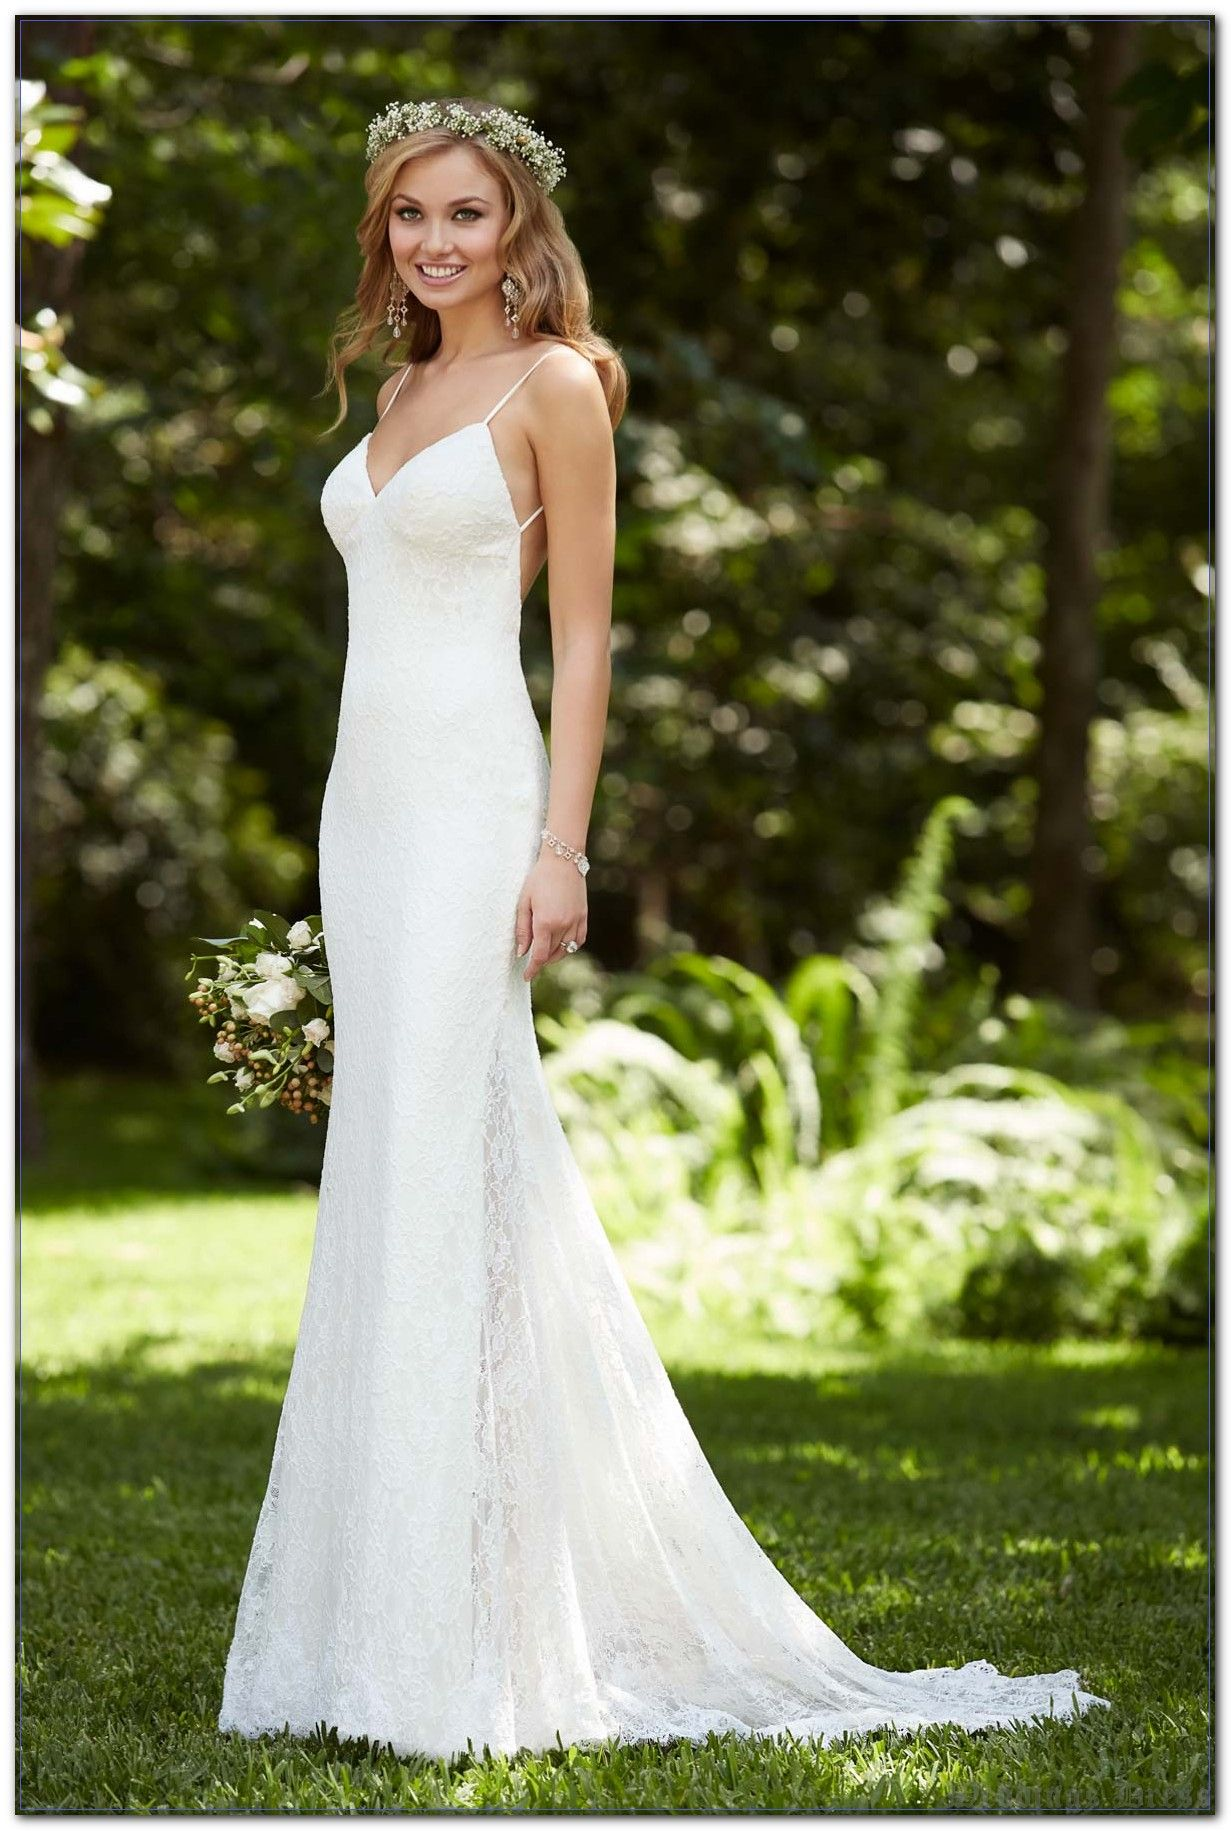 Get Rid of Weddings Dress Once and For All